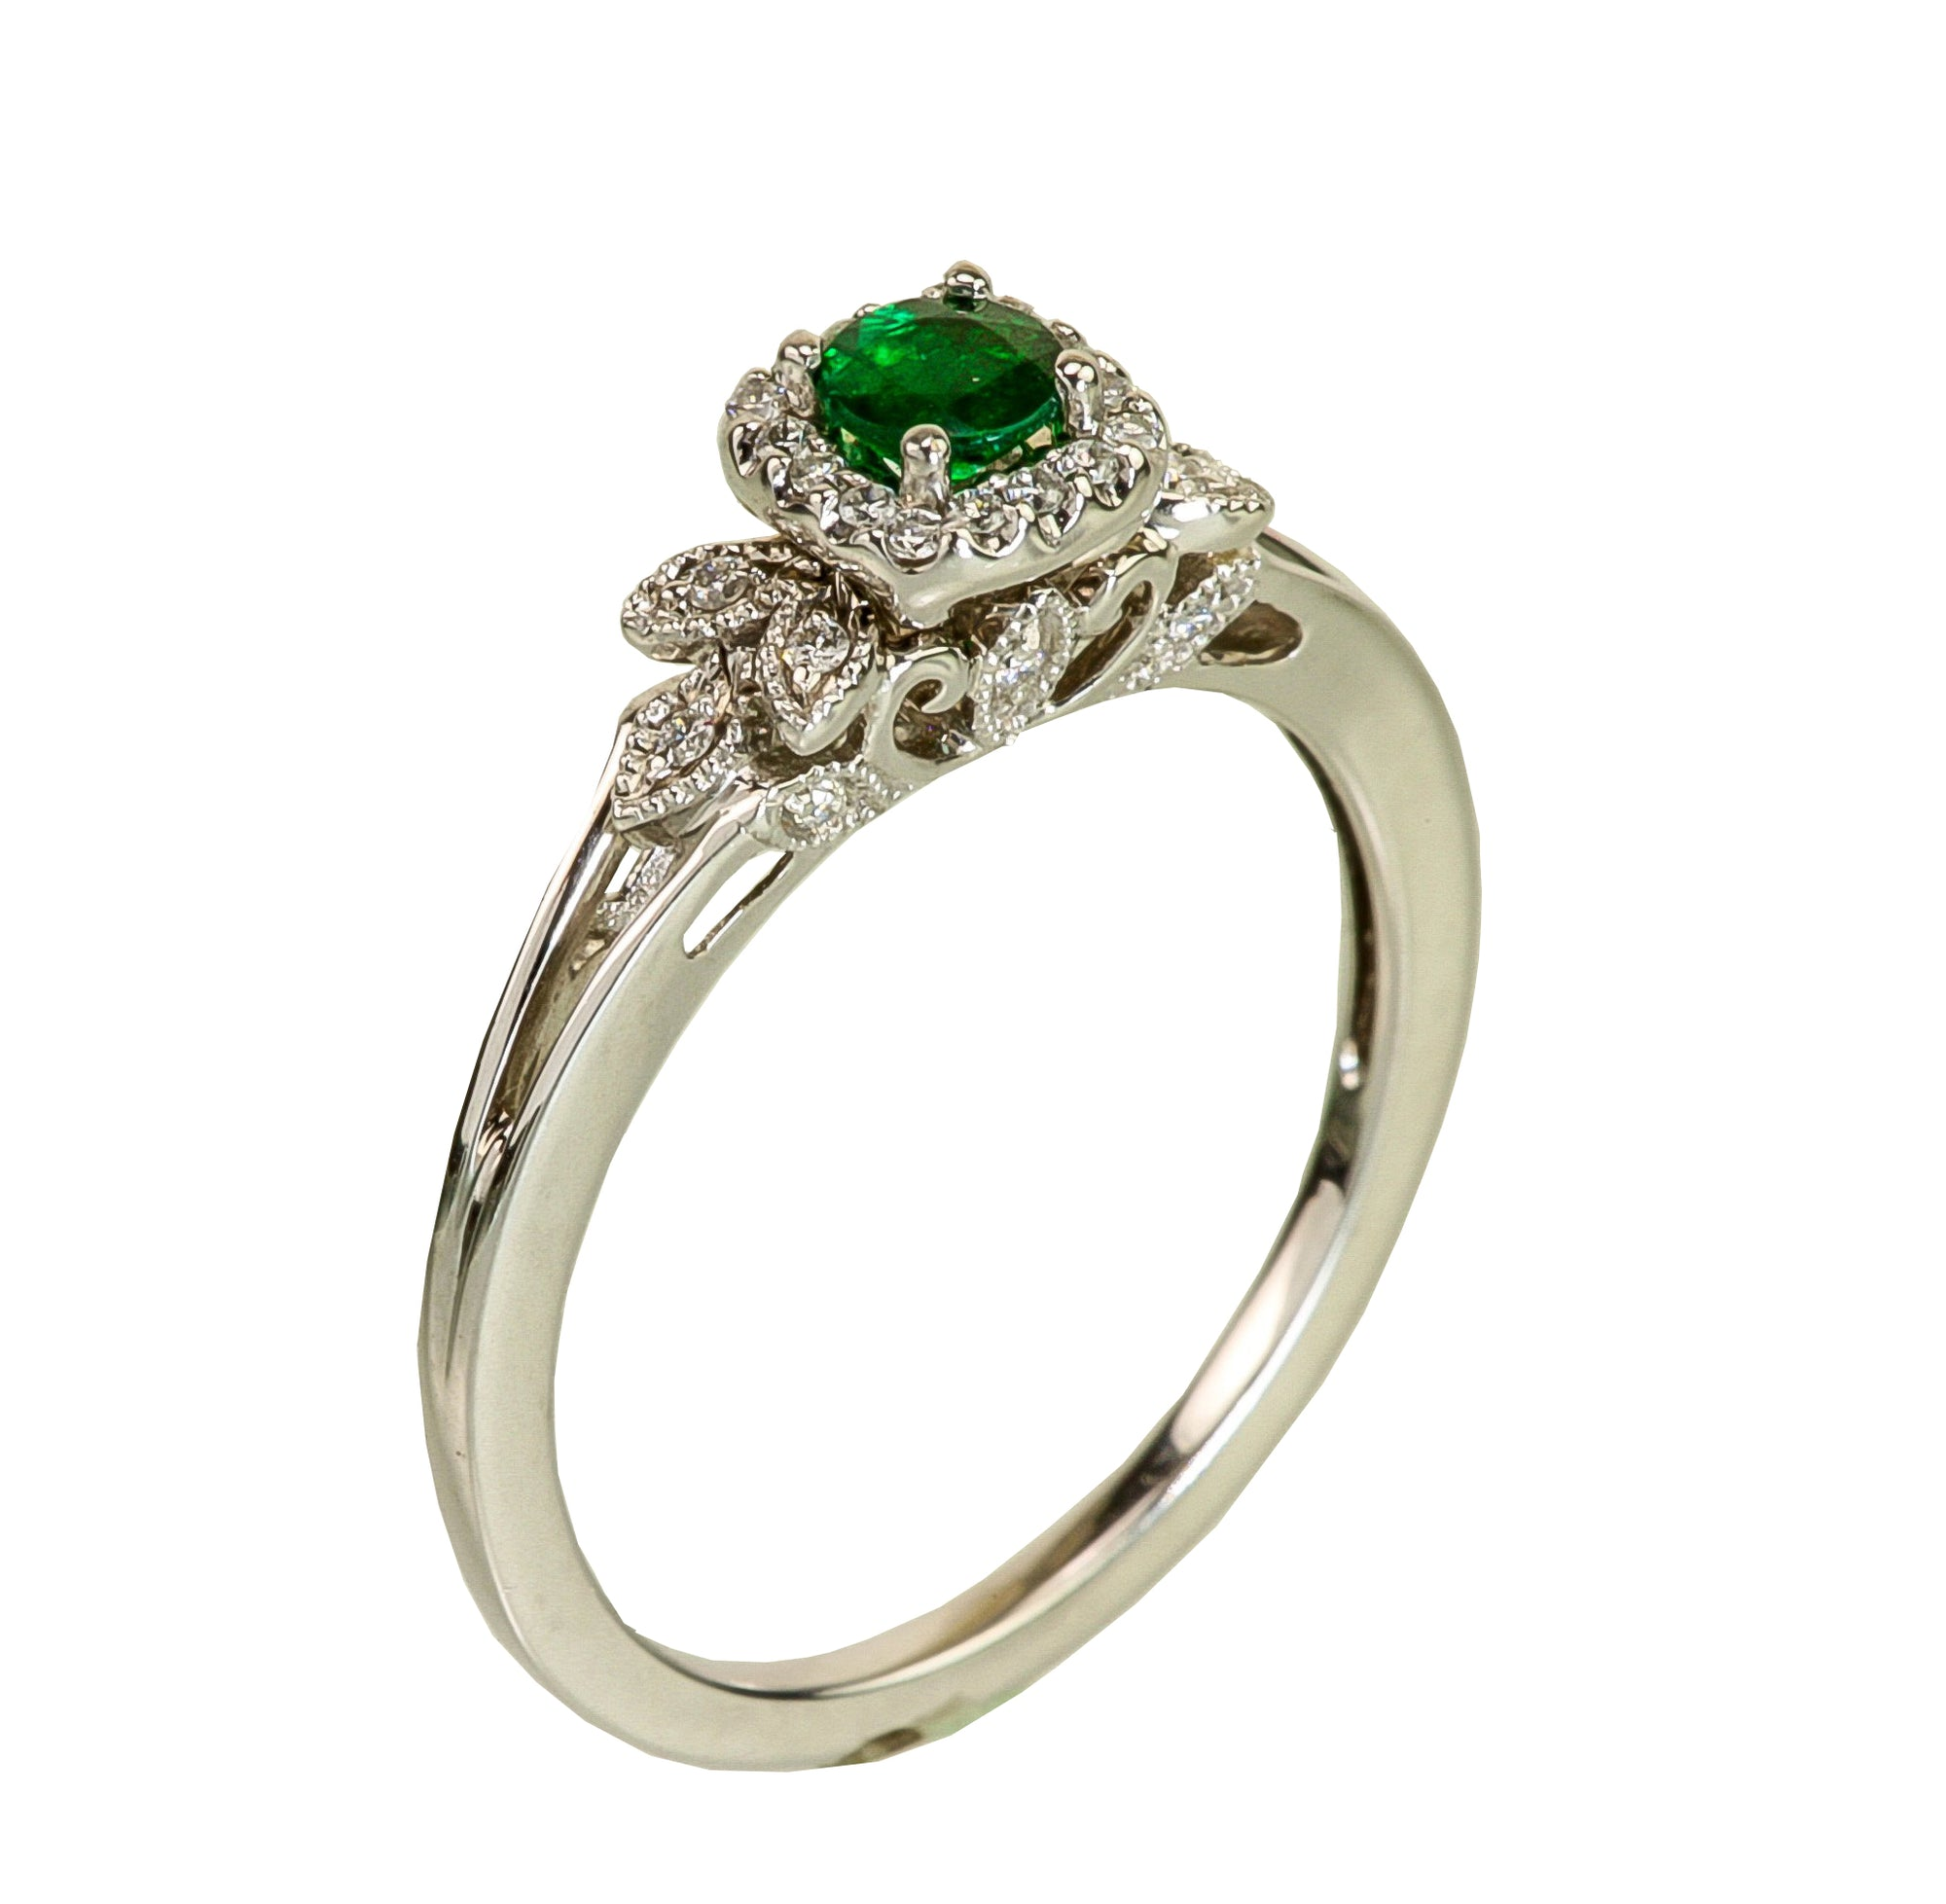 Emerald & Diamond 14kt White Gold Ring